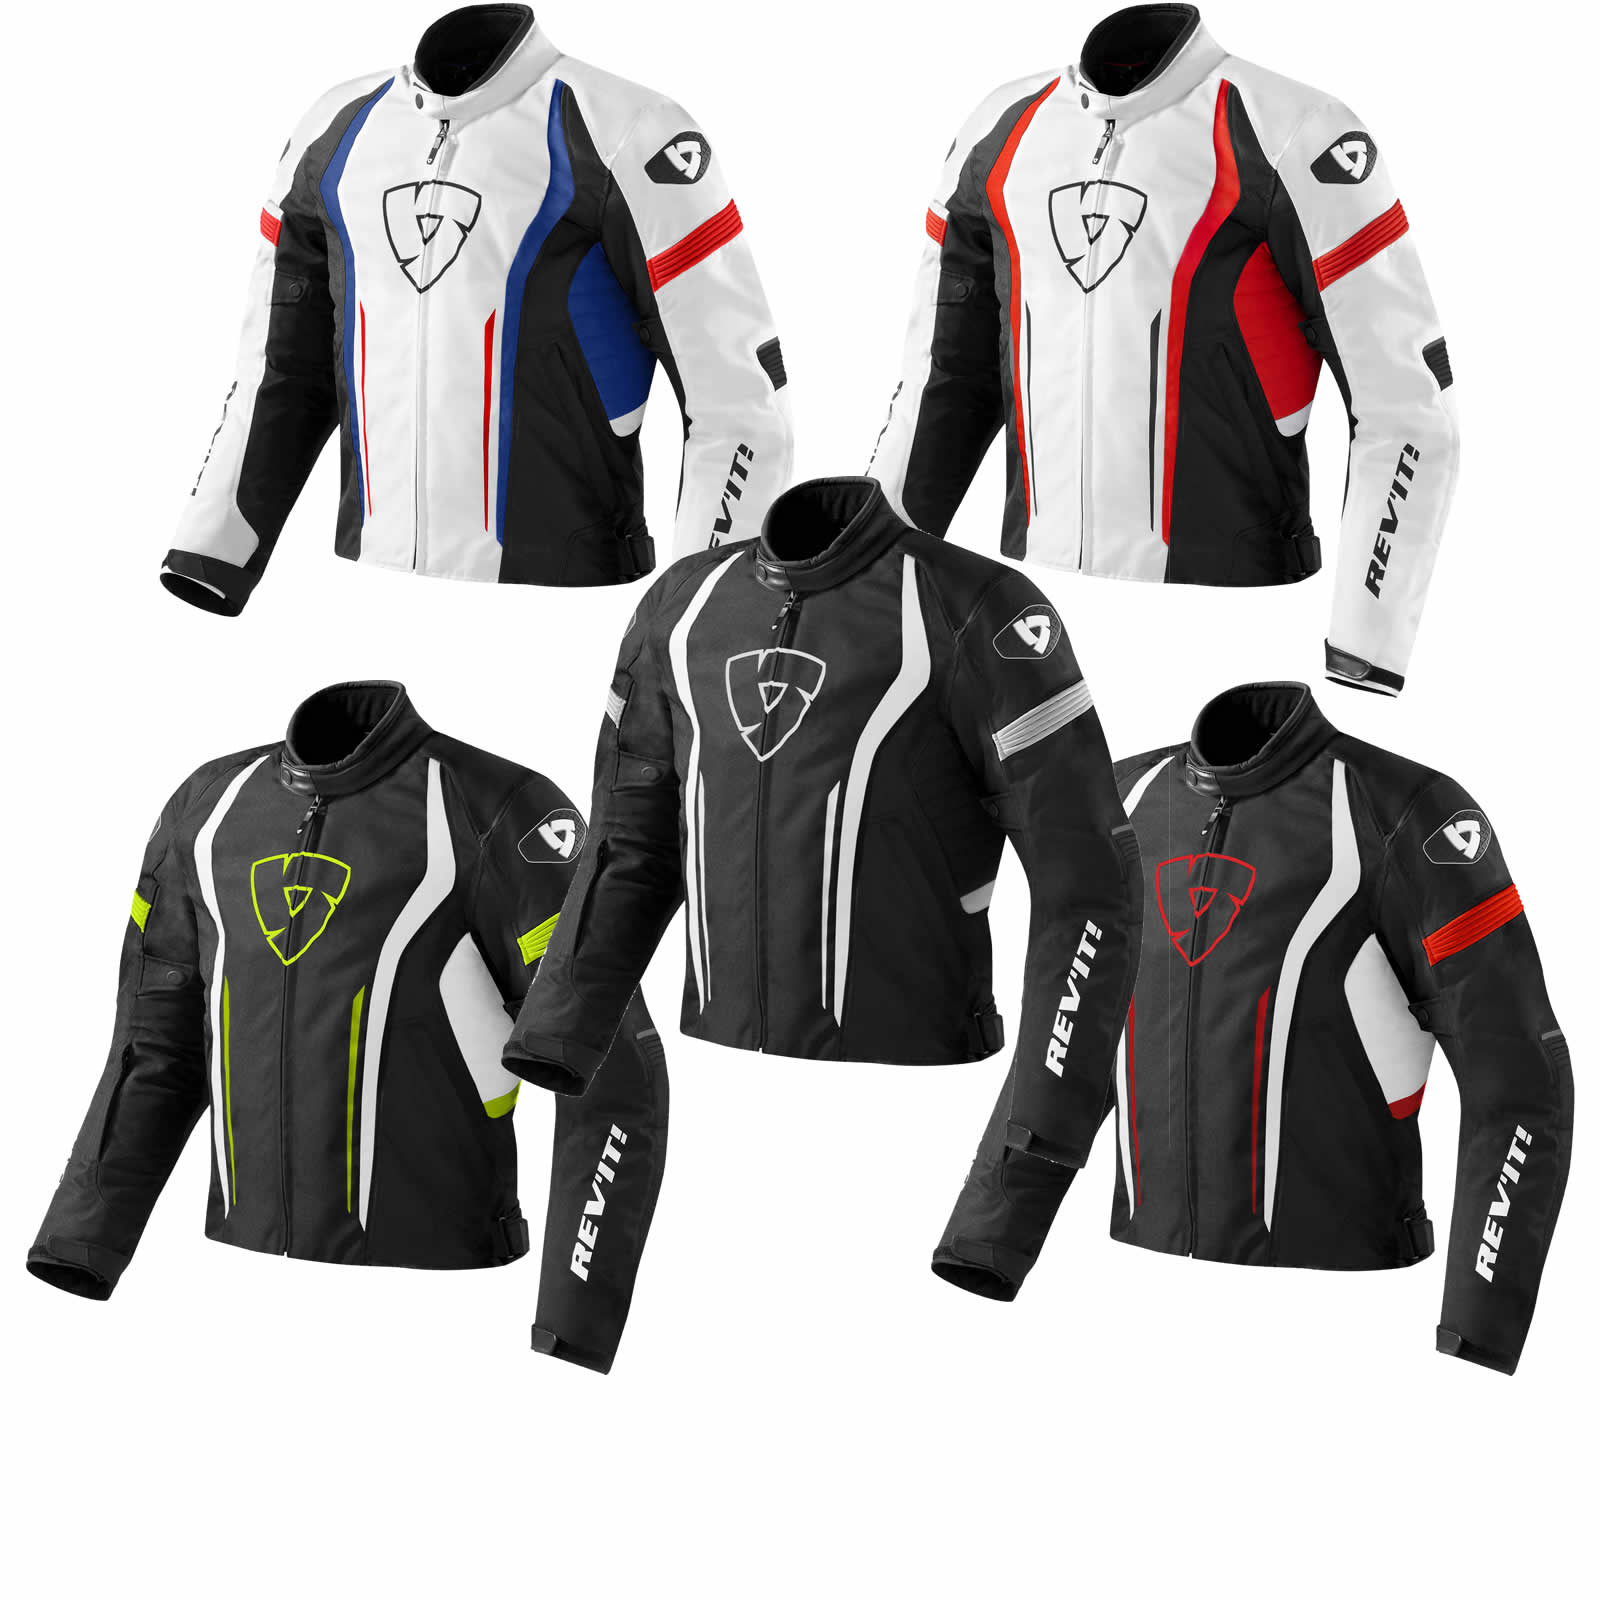 ed9b4edd0c96 Details about REV IT REVIT Raceway Motorcycle Jacket Free Eu Delivery